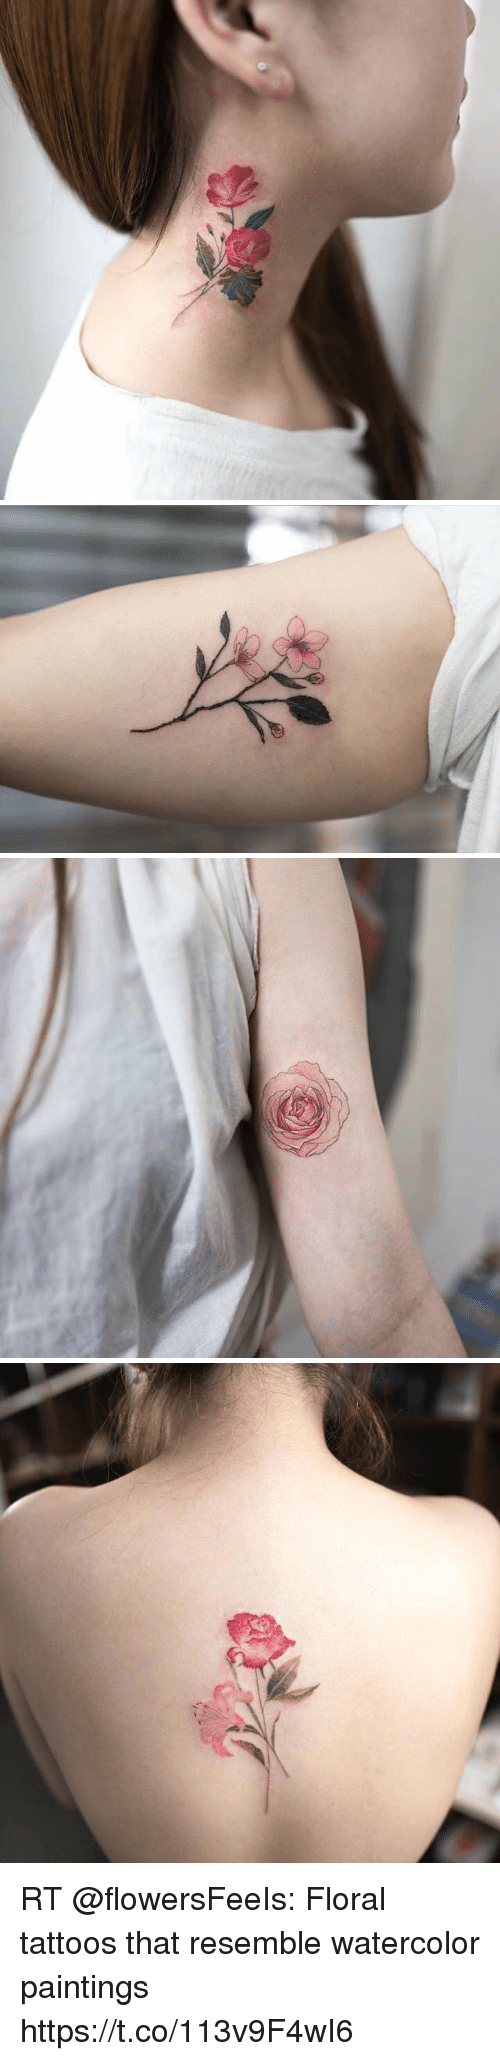 Rt Floral Tattoos That Resemble Watercolor Paintings